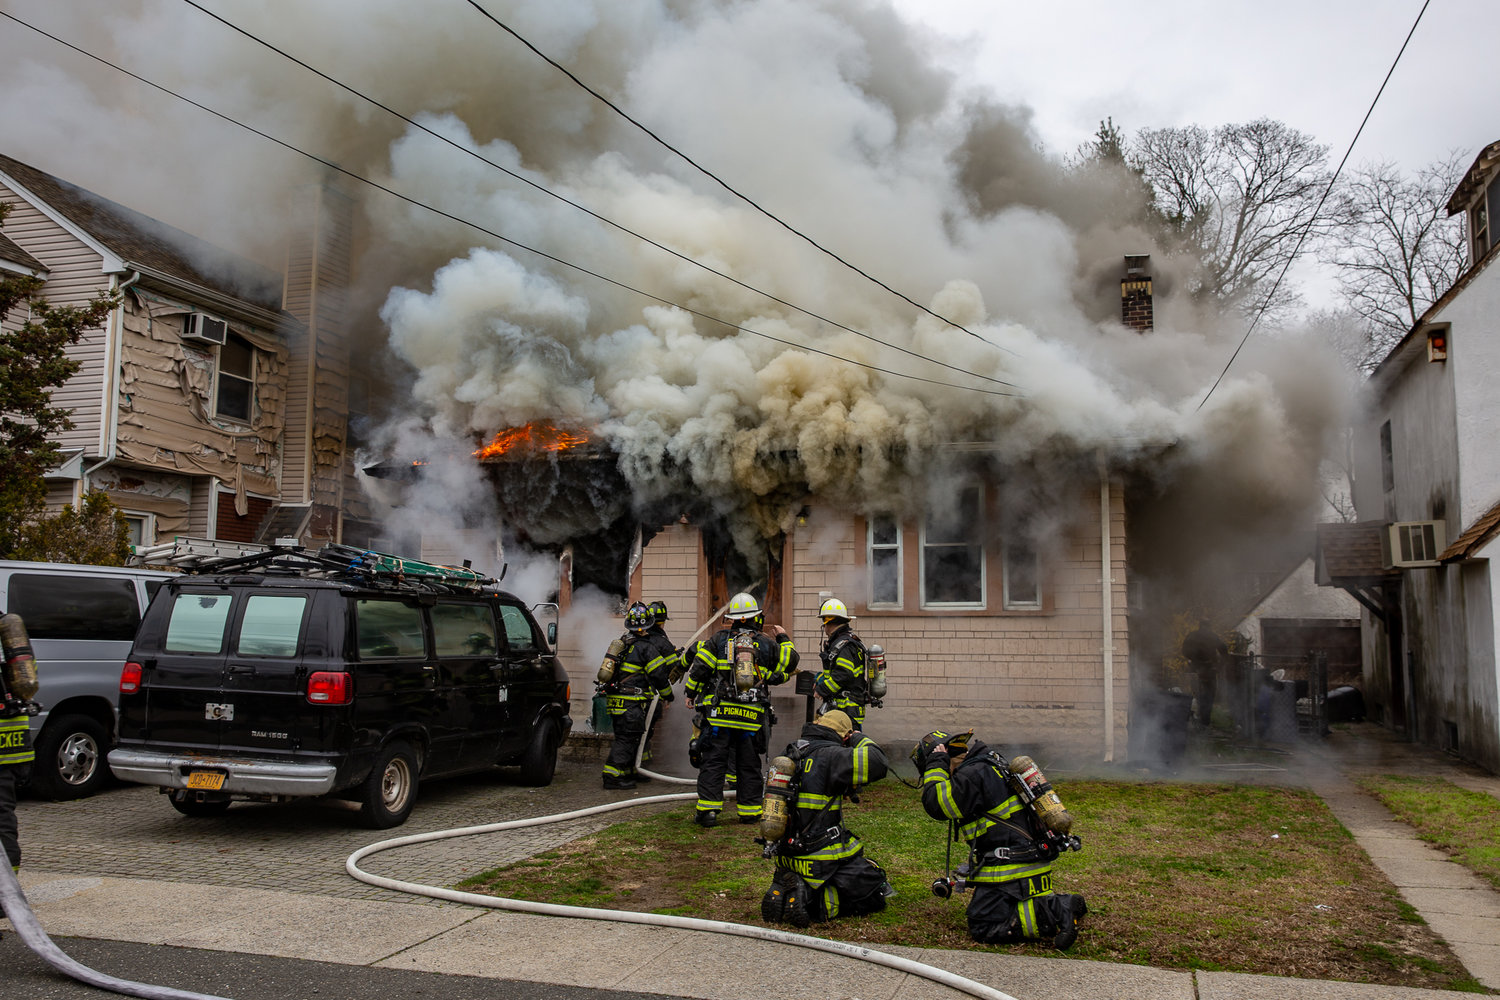 Lynbrook and East Rockaway firefighters responded to a home on Elbert Street in East Rockaway. Kevin Meyer, 31, was found inside and charged with intentionally starting the fire and attacking firefighters by the Nassau County Police Department